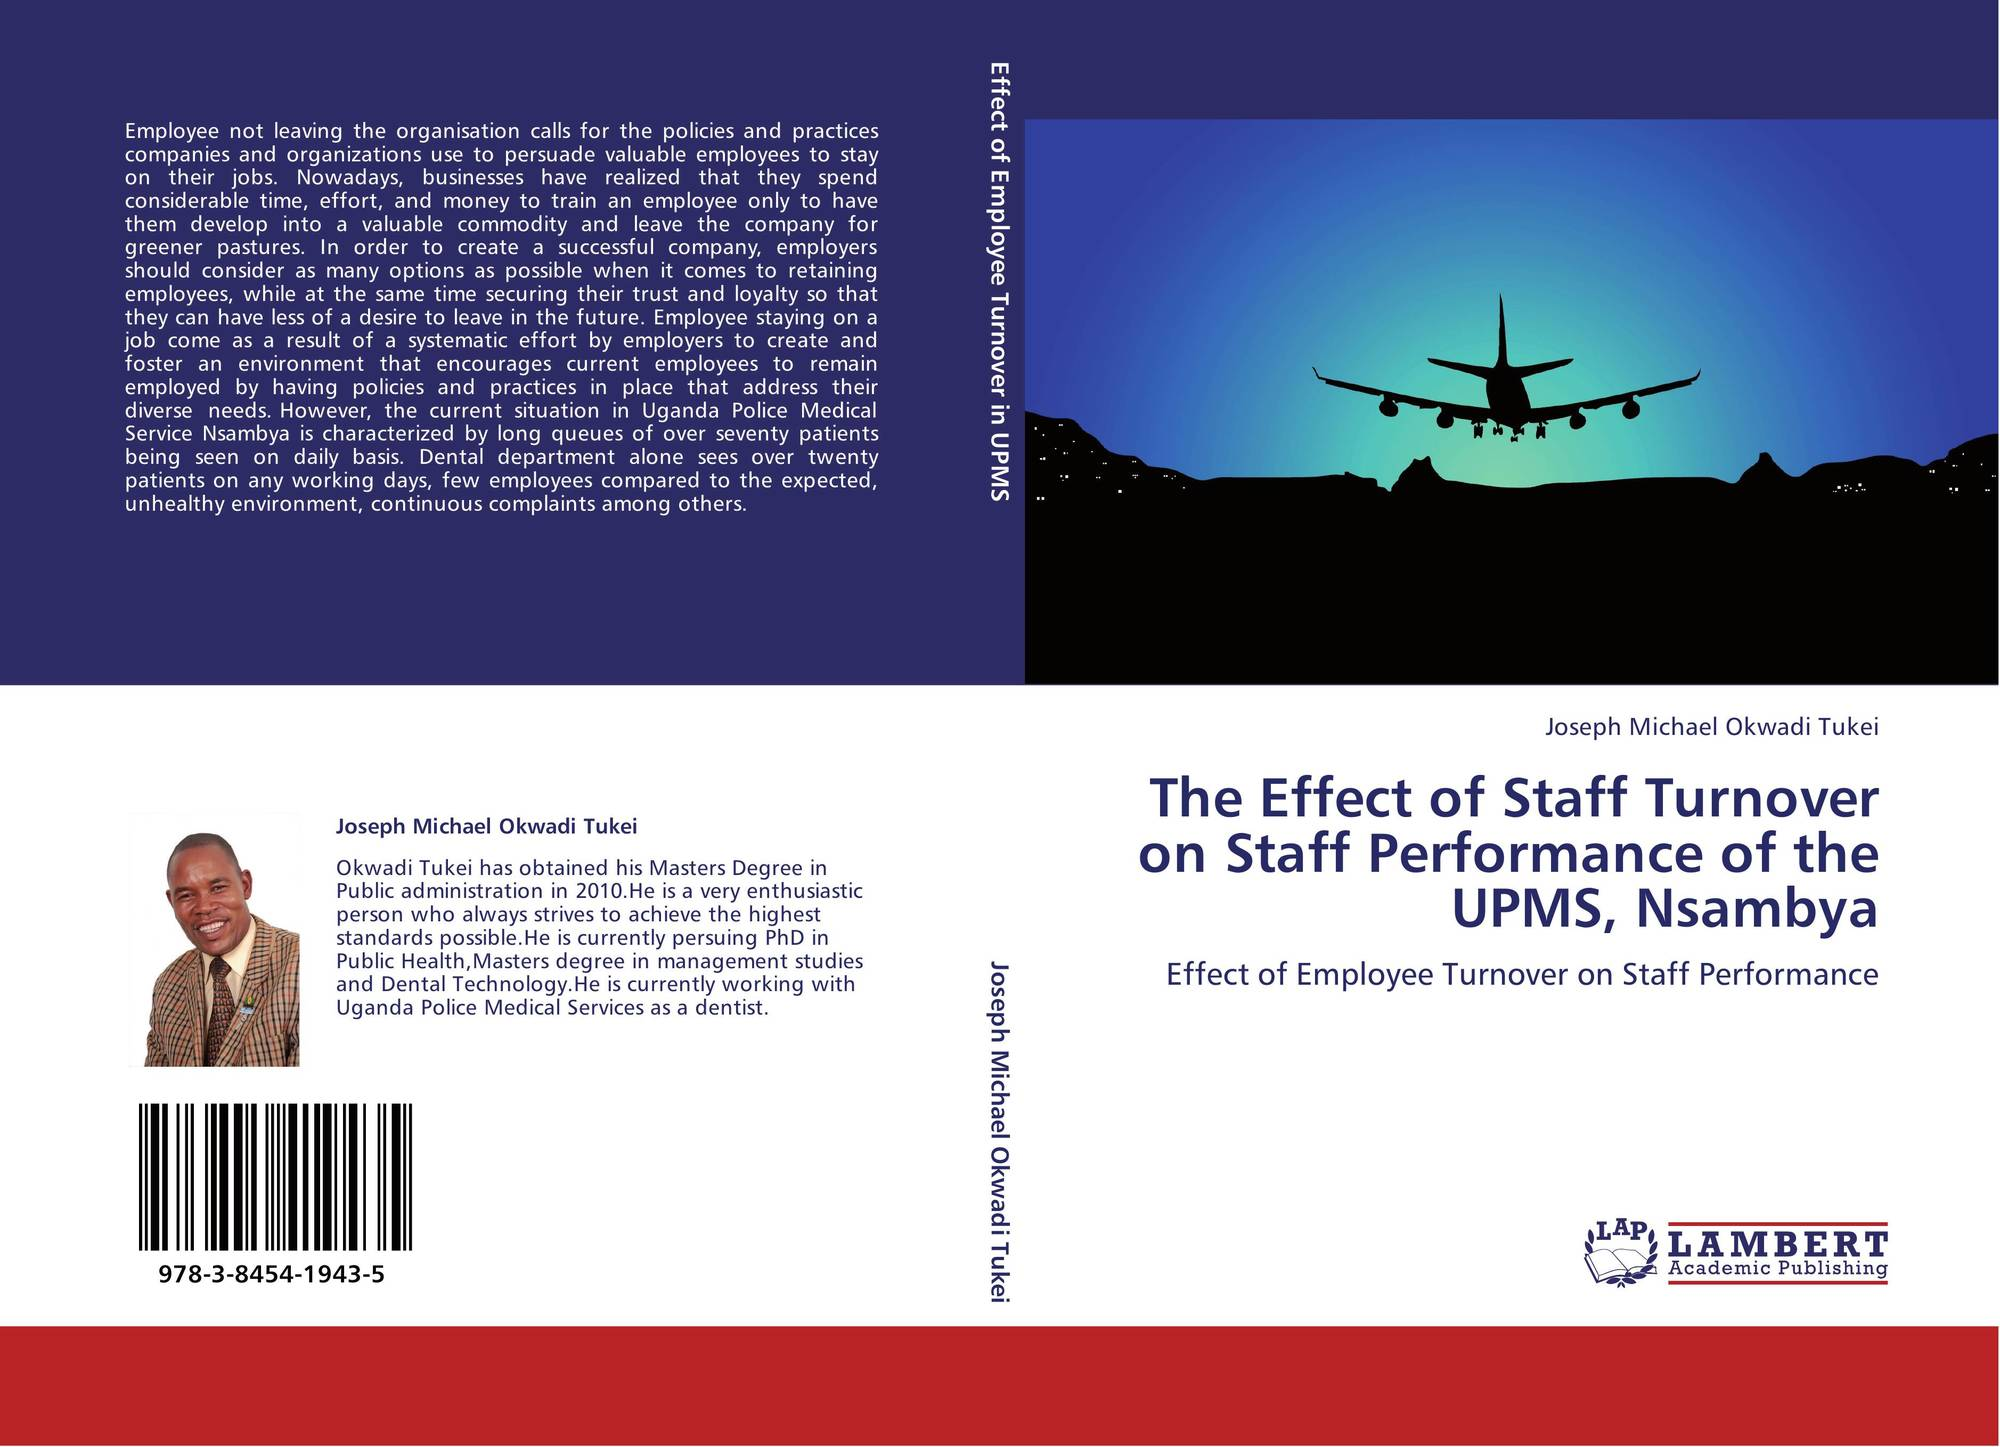 """effect of employee turnover in the """"employee turnover is a situation where employees exit the organization voluntarily for various reasons or are relieved by the organisation or retire, thereby affecting the organization, most times negatively in terms of costs and the capacity to deliver the minimum required services""""."""